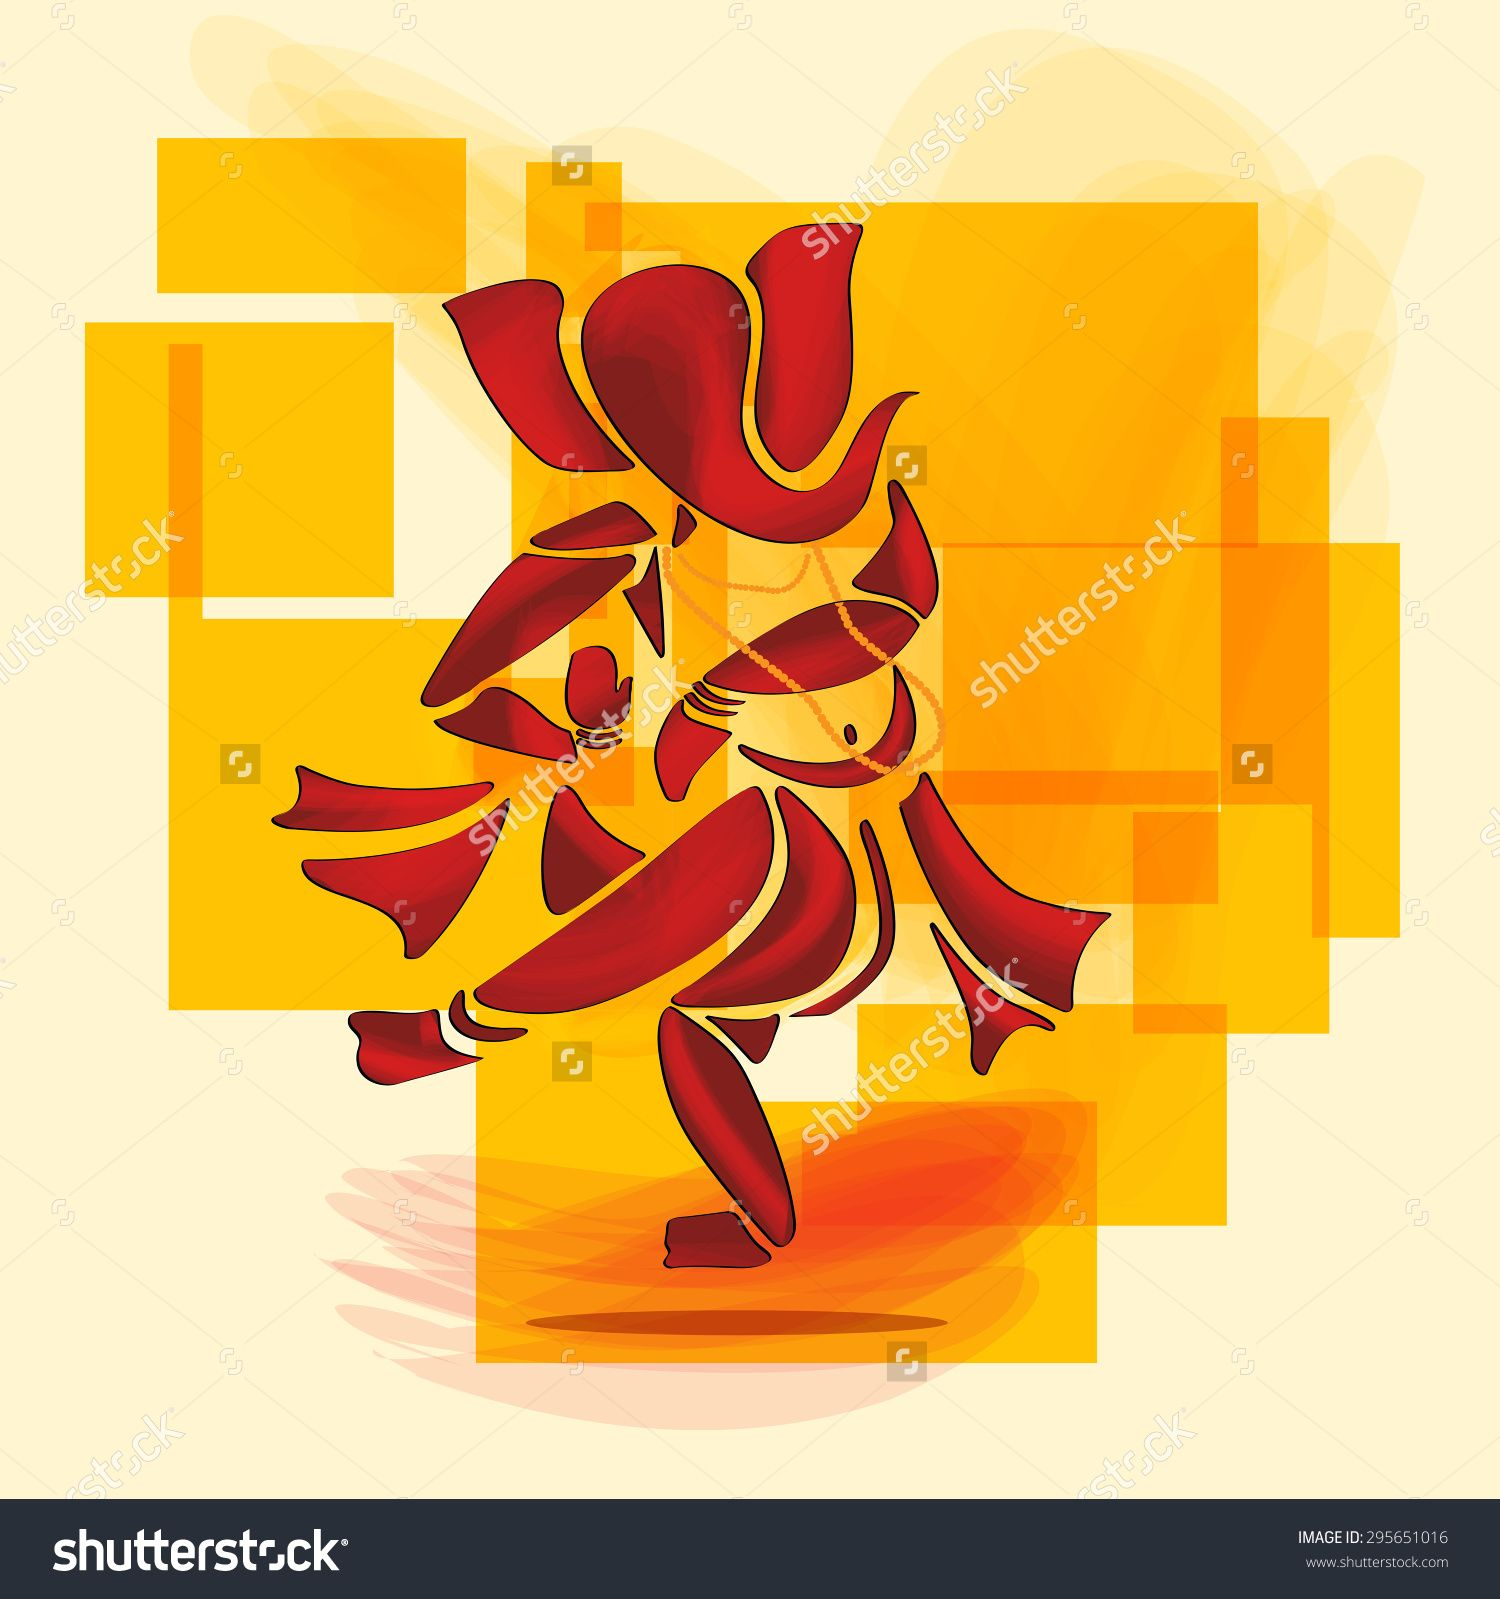 Lord ganesha multi color painting hd image - Ganesha Or Ganesh Hindu God Dance In Watercolor Painting Style